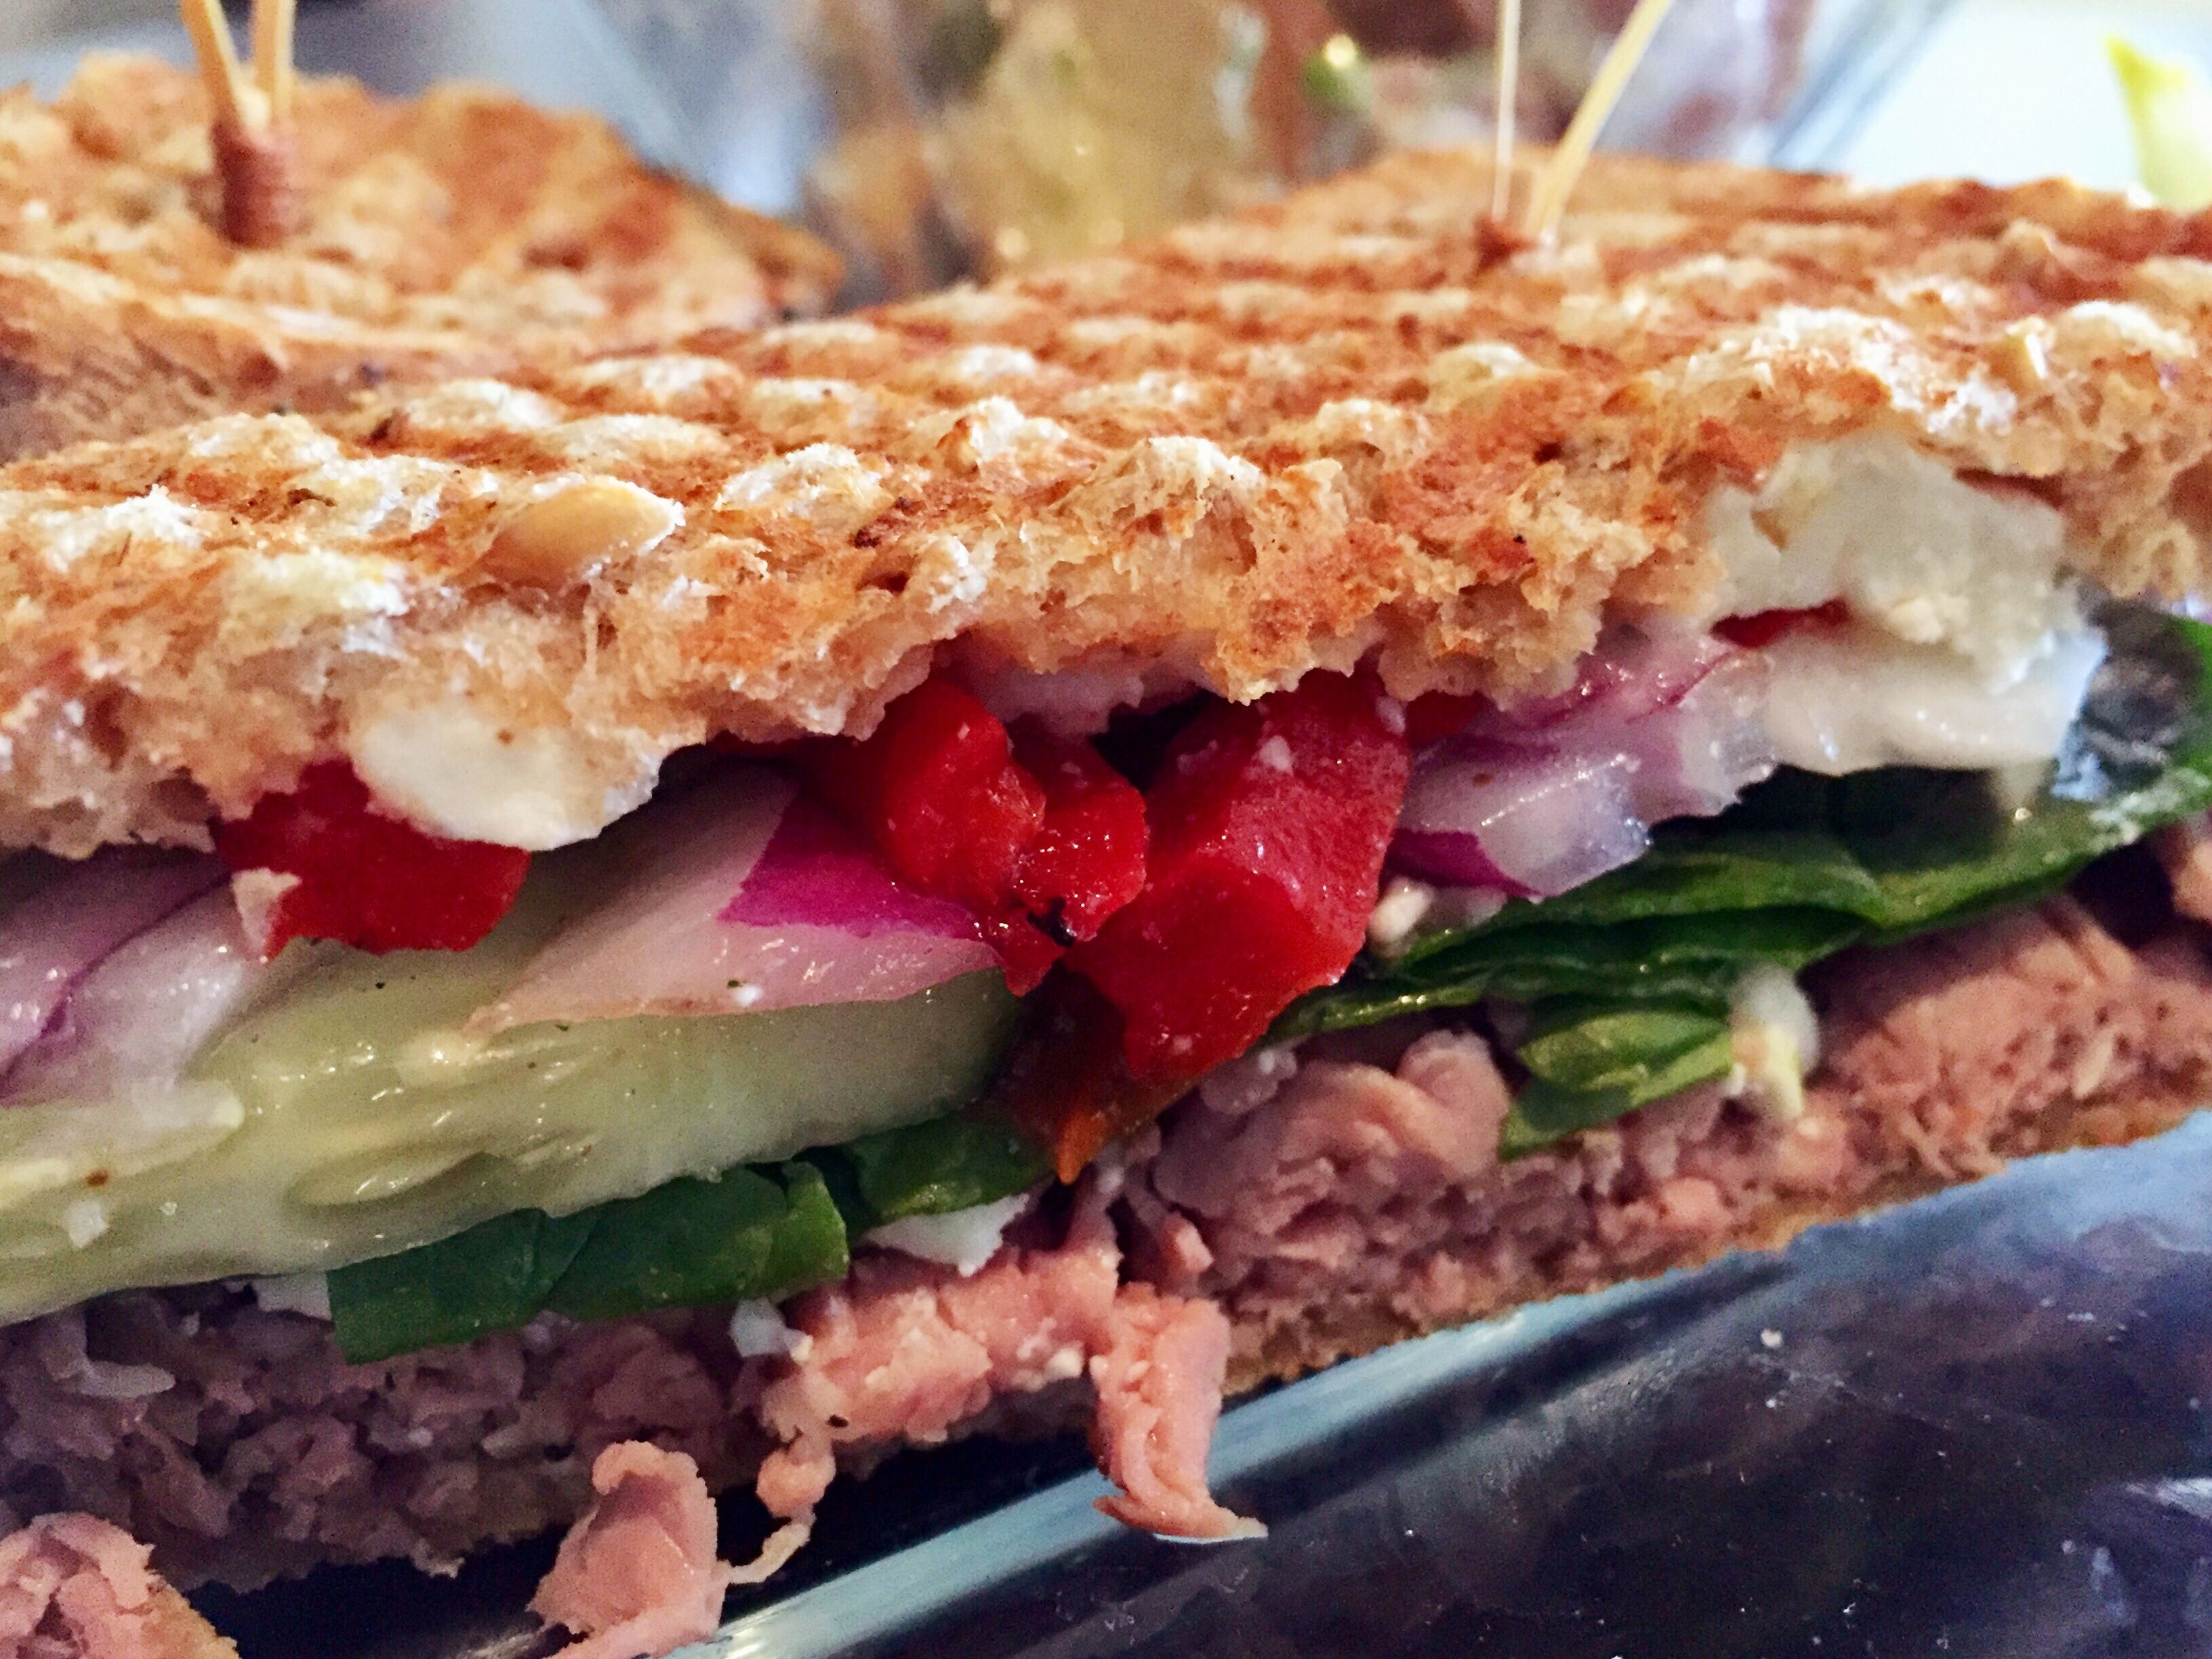 deco deli bar eating out jeff jones fed sliced roast beef topped feta cheese cucumber red onion roasted red pepper and greek dressing sp on panini pressed wheat b